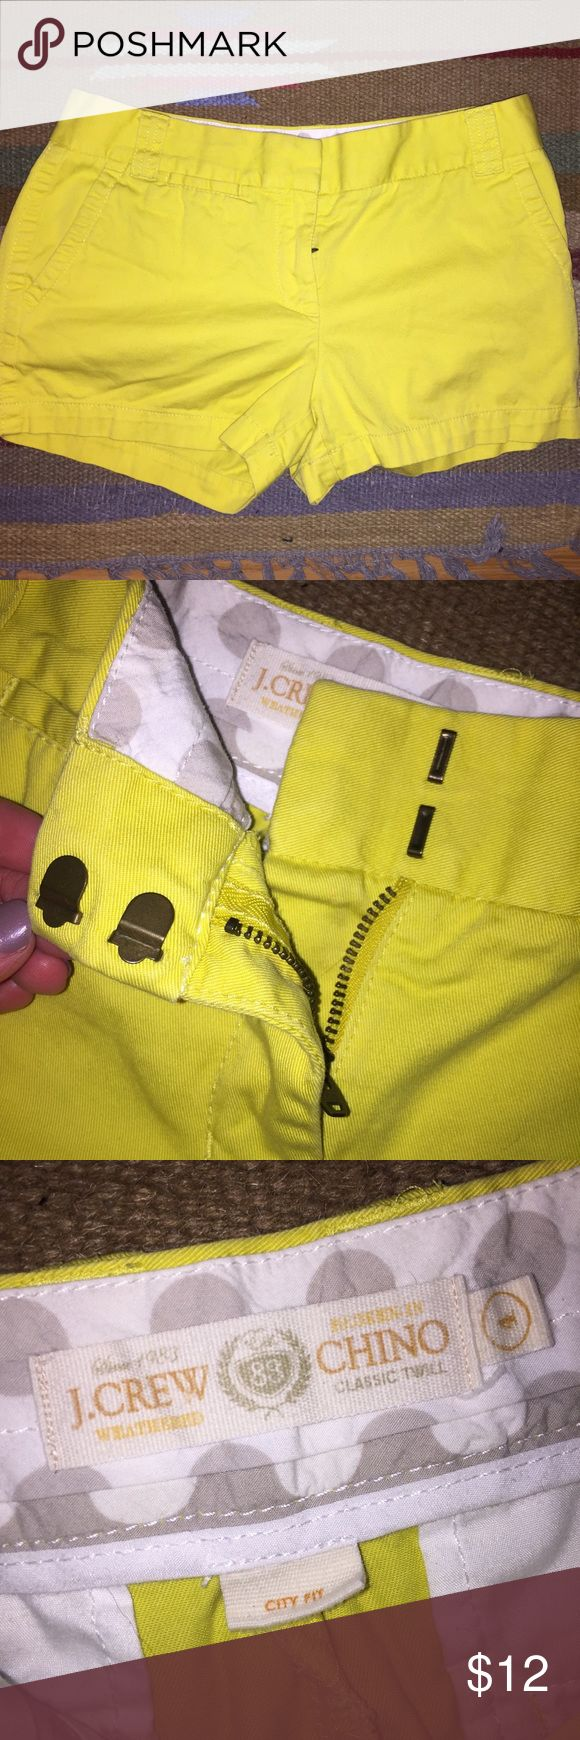 J Crew canary yellow shorts size 4 women's/misses J. Crew canary yellow shorts. Size women 4. 'City fit'. Back pockets. Zipper in front with double clasps. No stains/holes. J. Crew Shorts